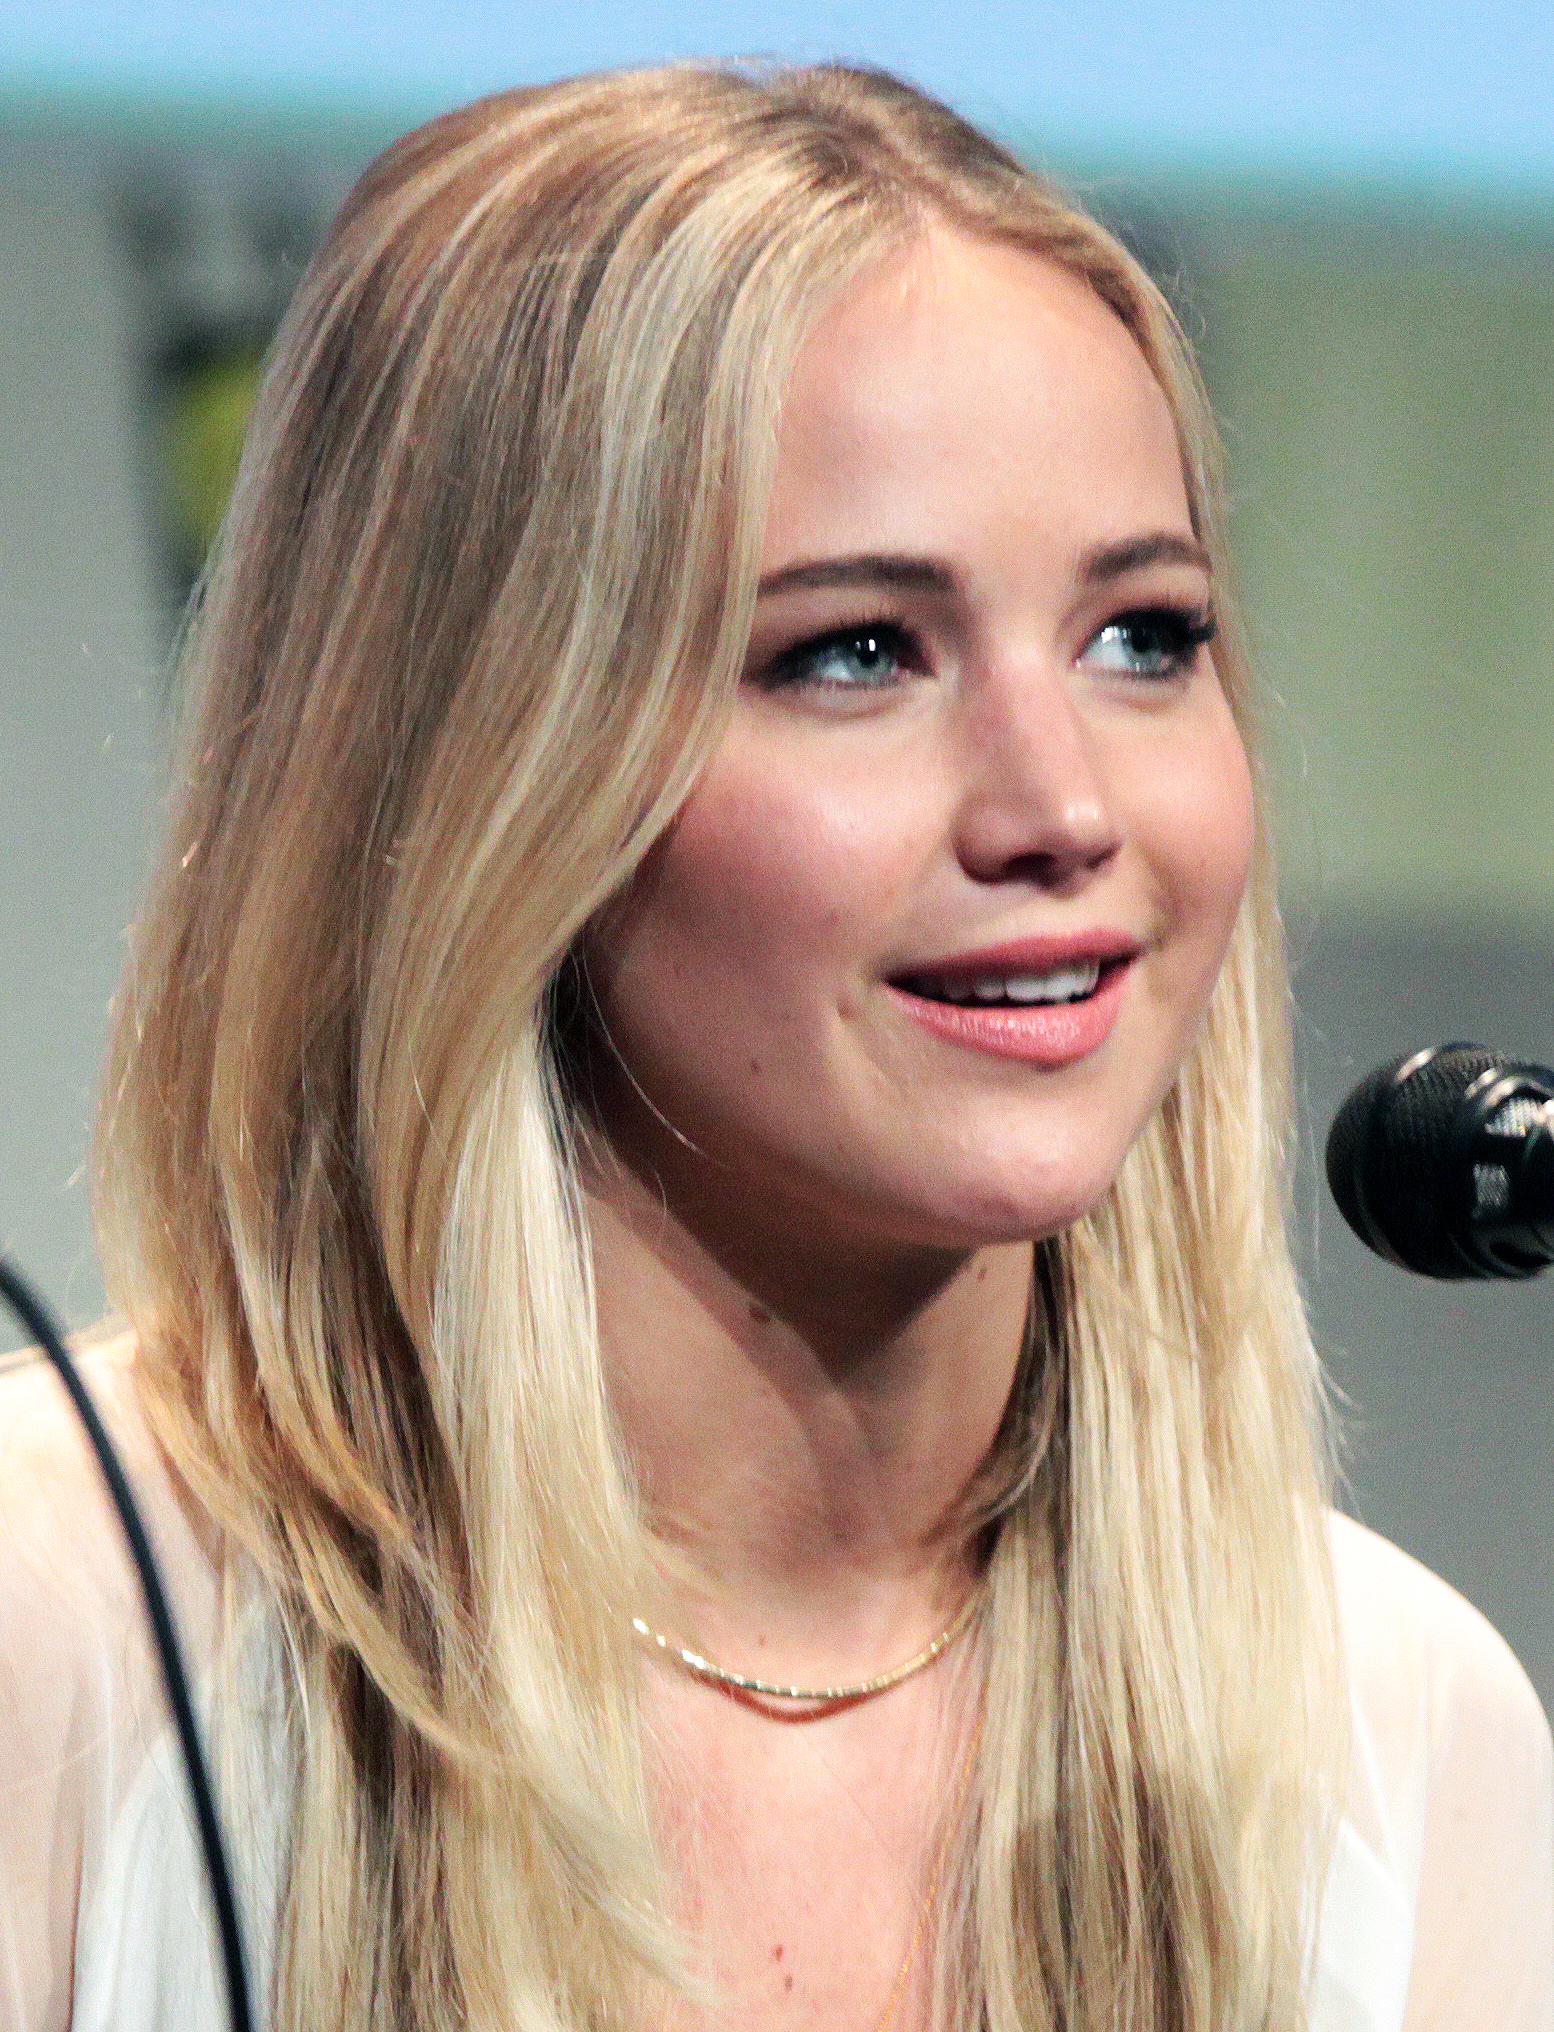 https://upload.wikimedia.org/wikipedia/commons/0/0b/Jennifer_Lawrence_SDCC_2015_X-Men.jpg